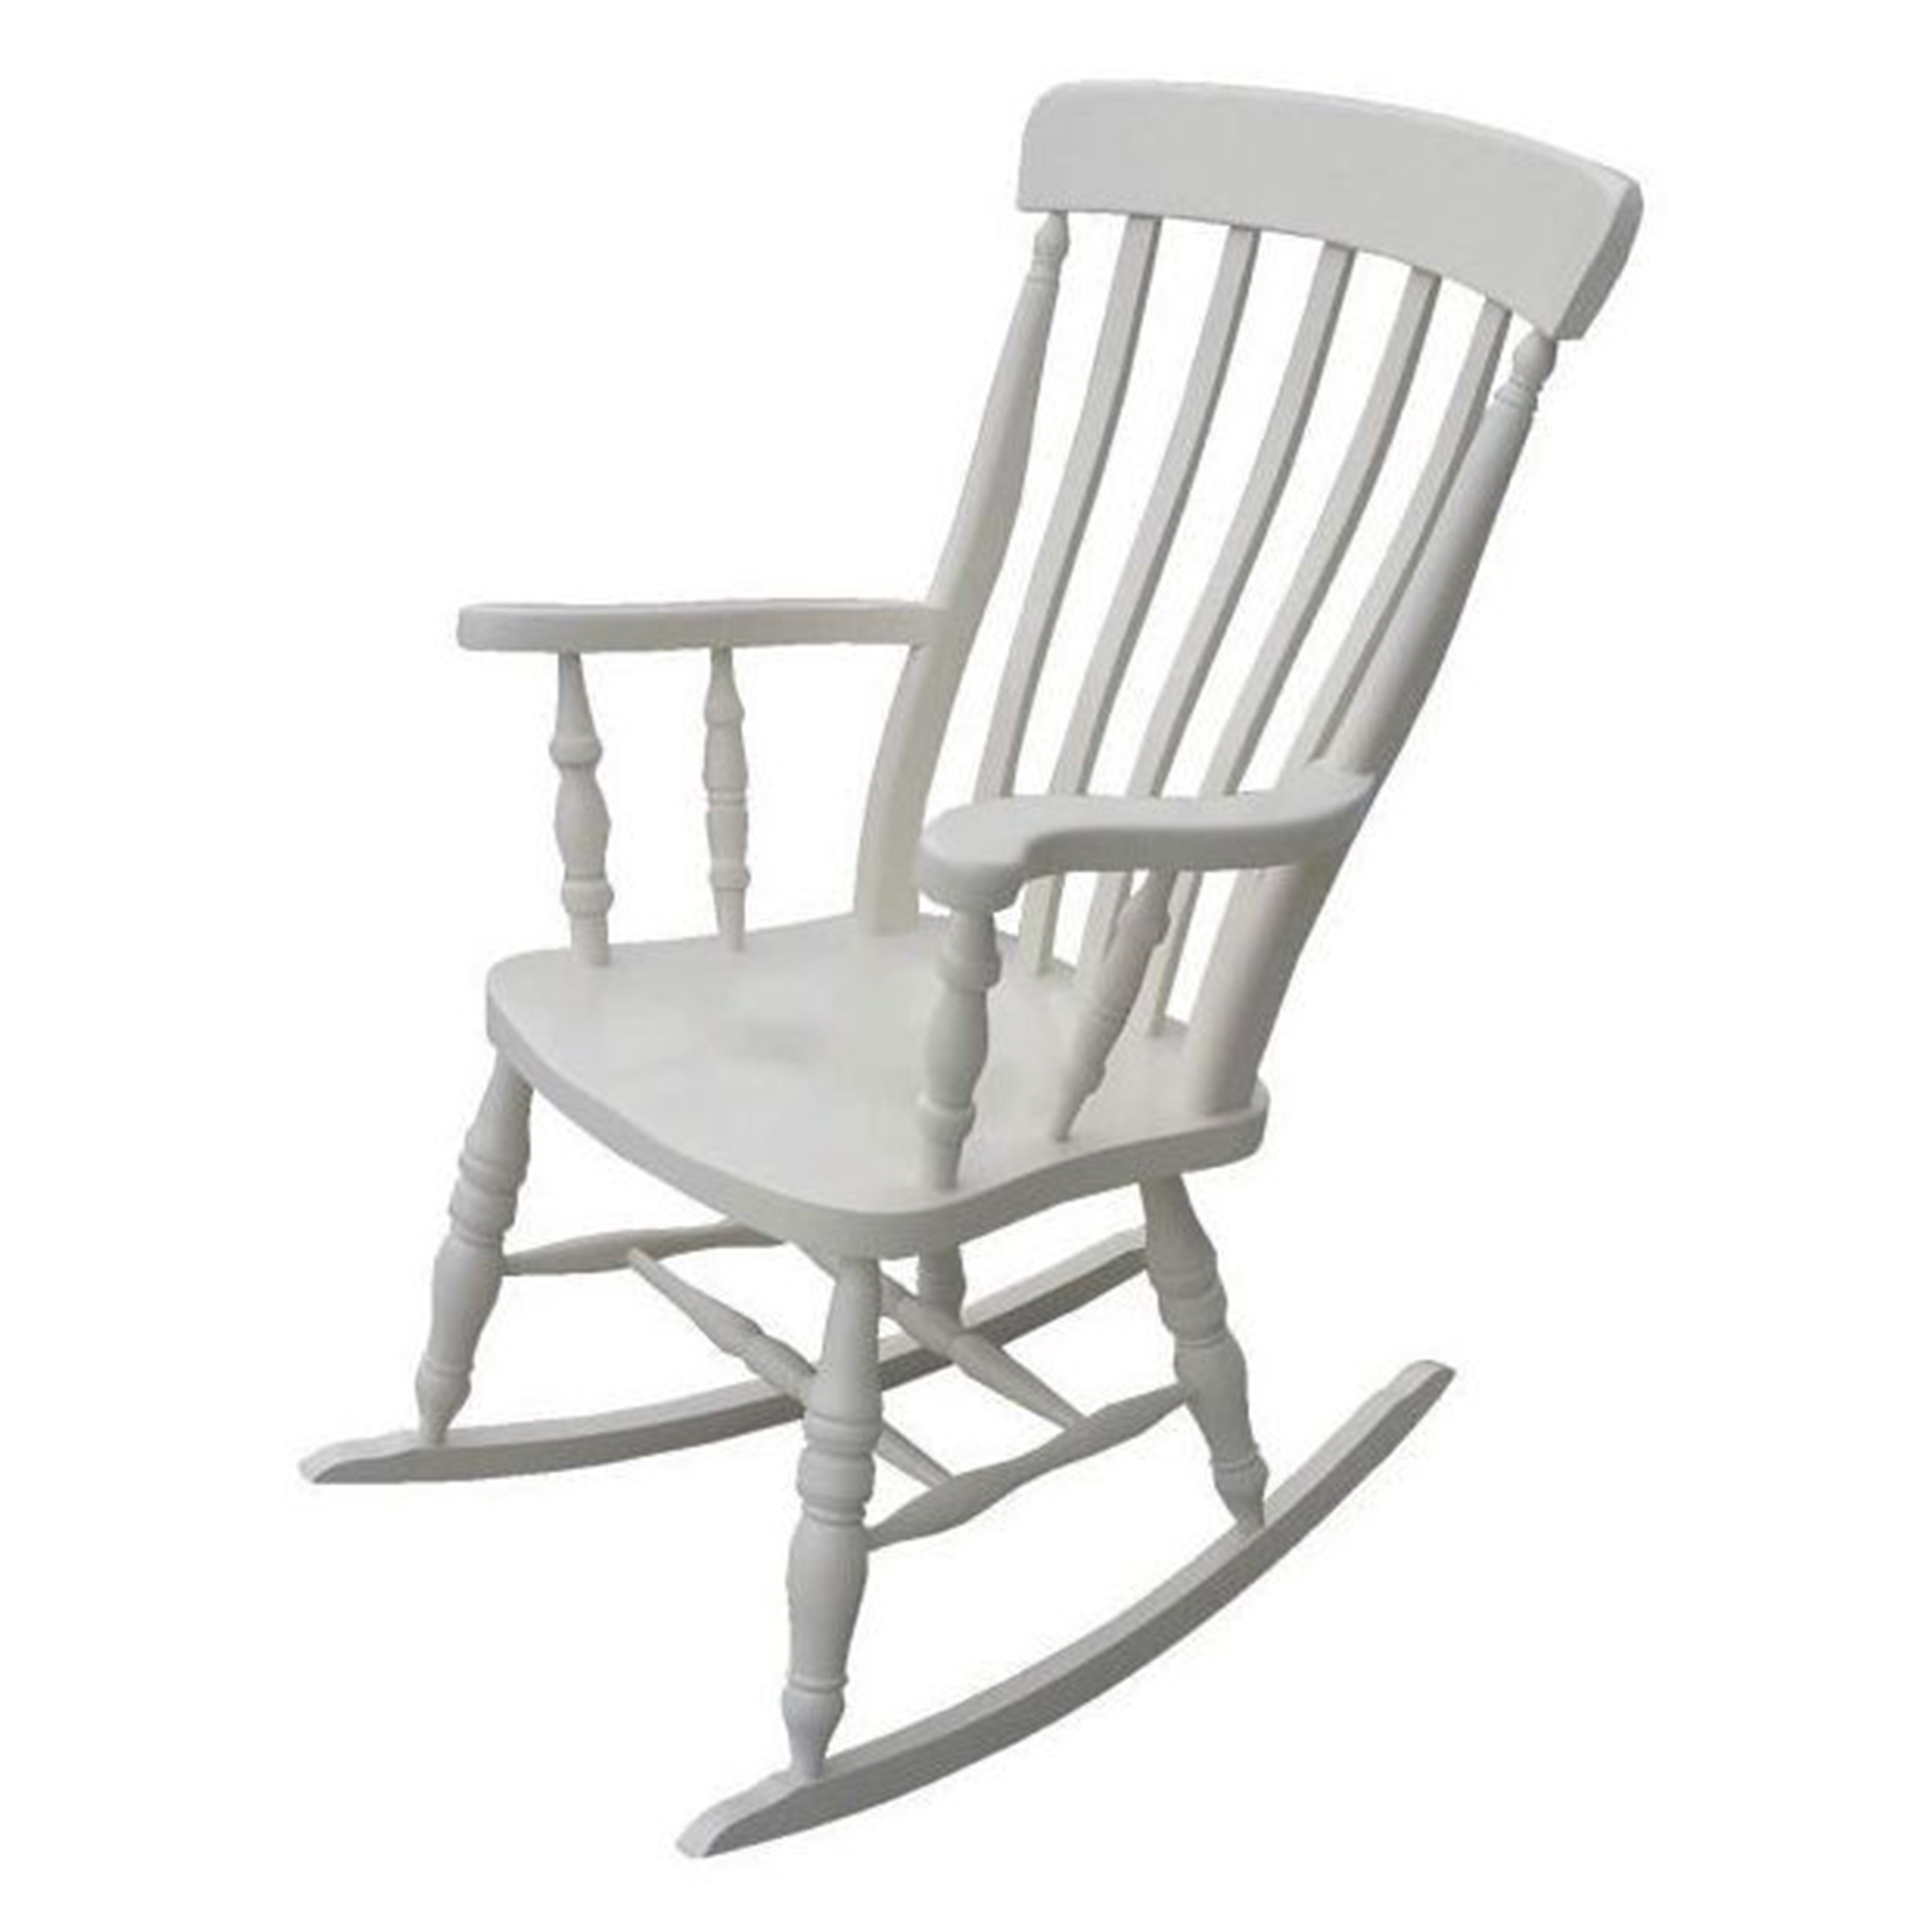 Antique French Style Rocking Chair